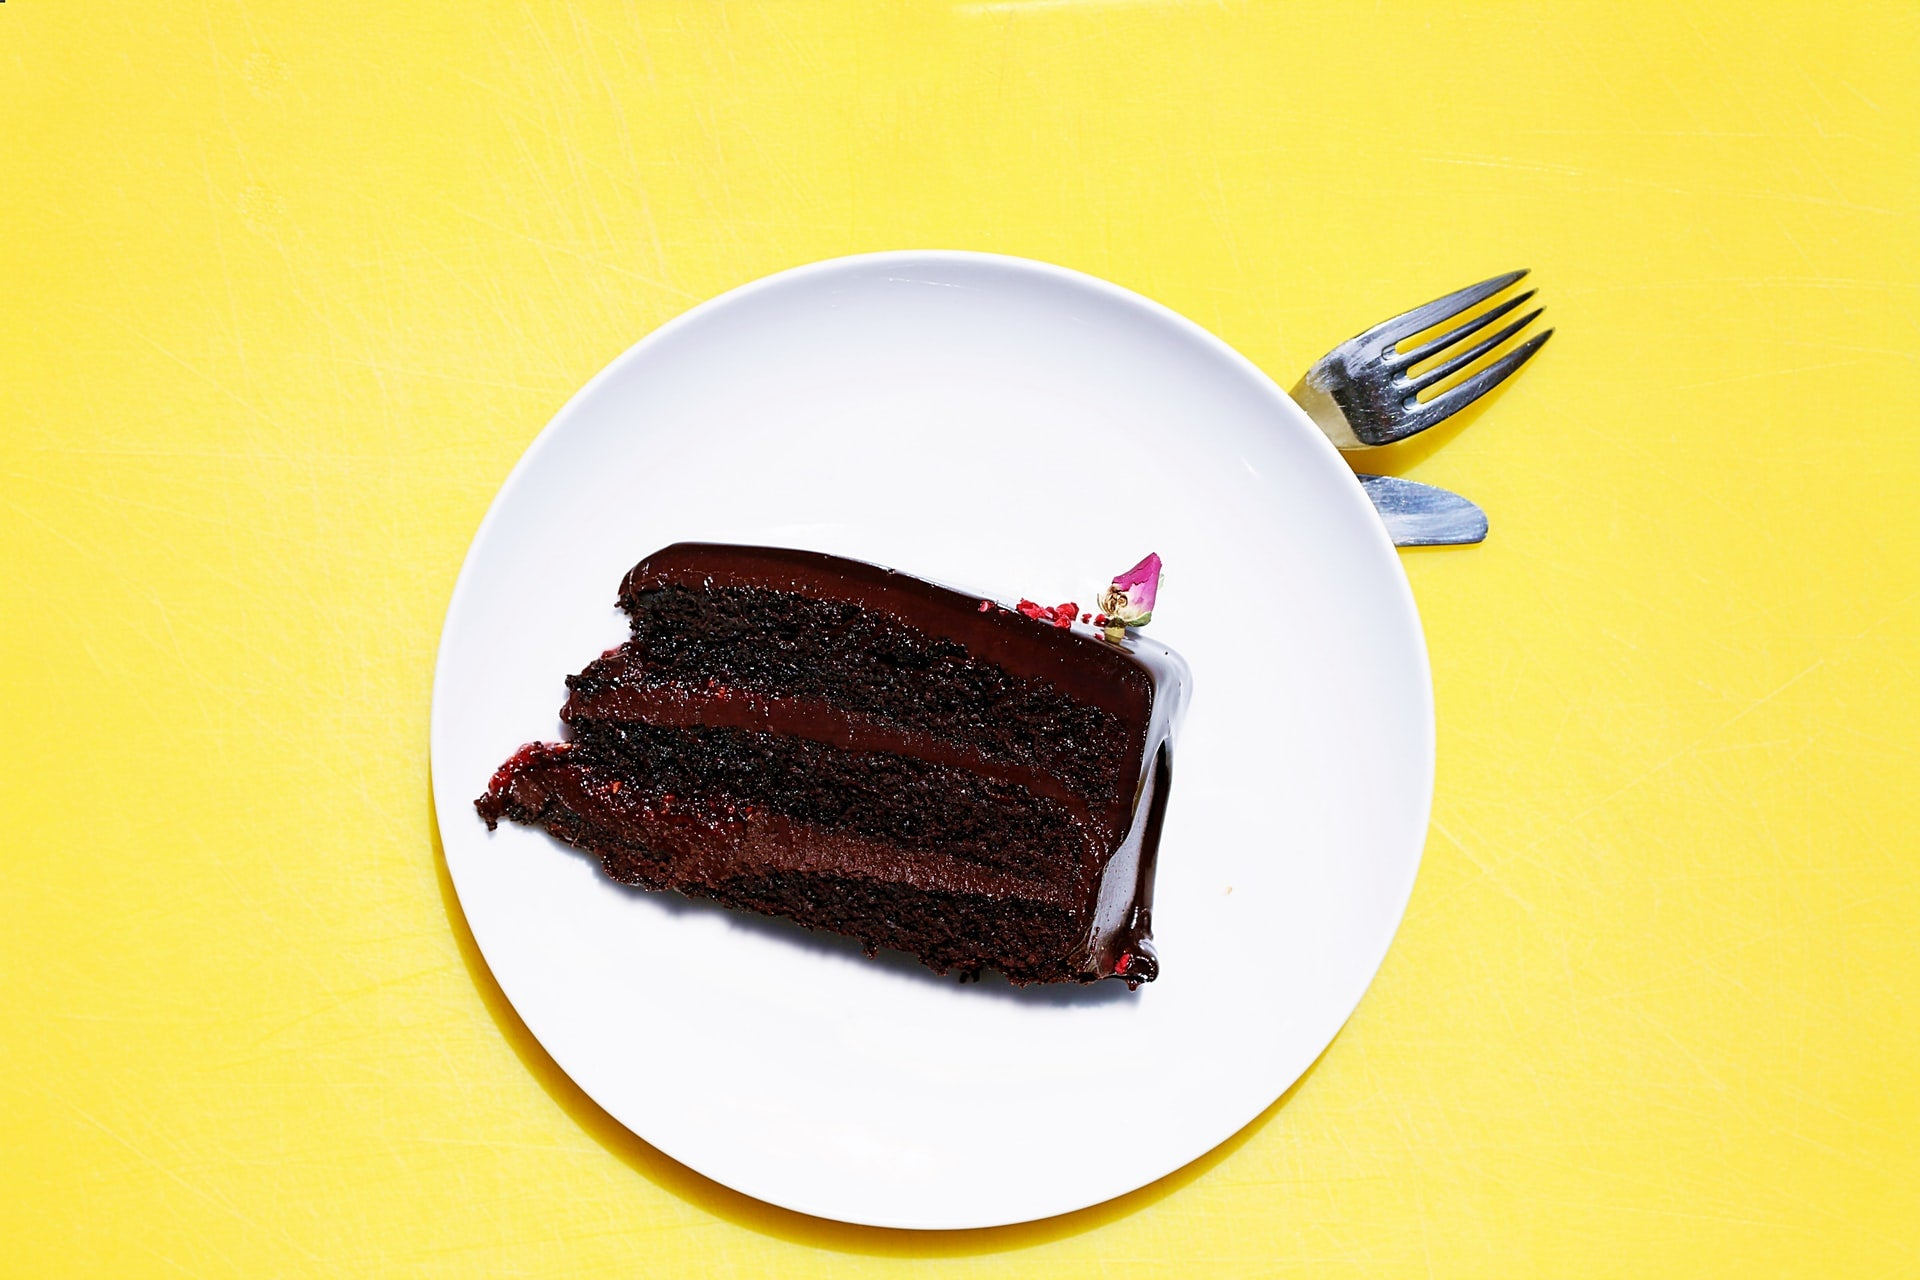 Delectable Chocolate cakes for a satisfactory palate